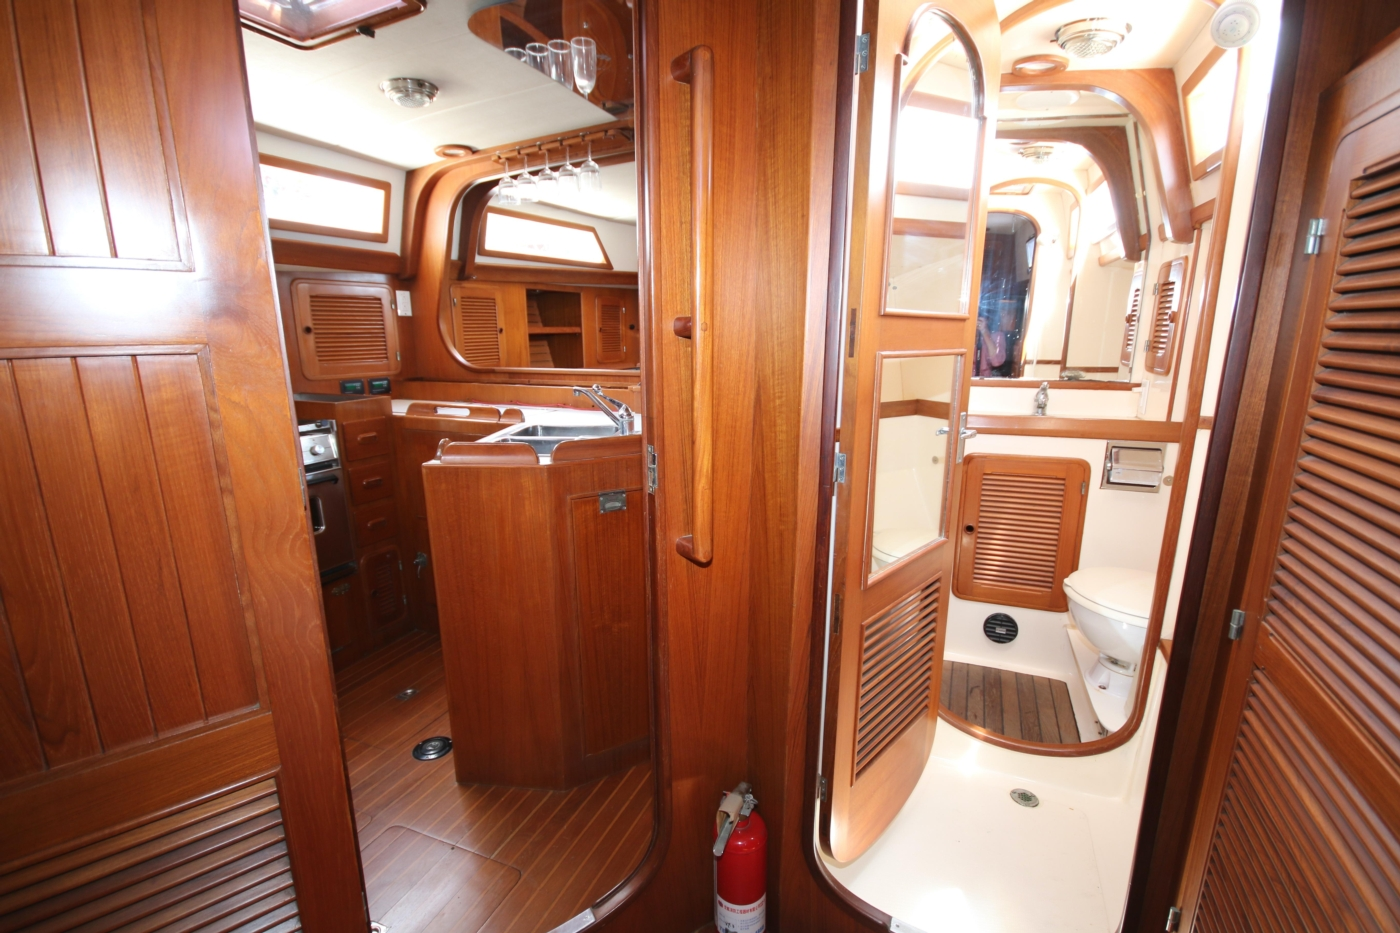 1996 Tanton 45 Offshore, Forward view from aft cabin